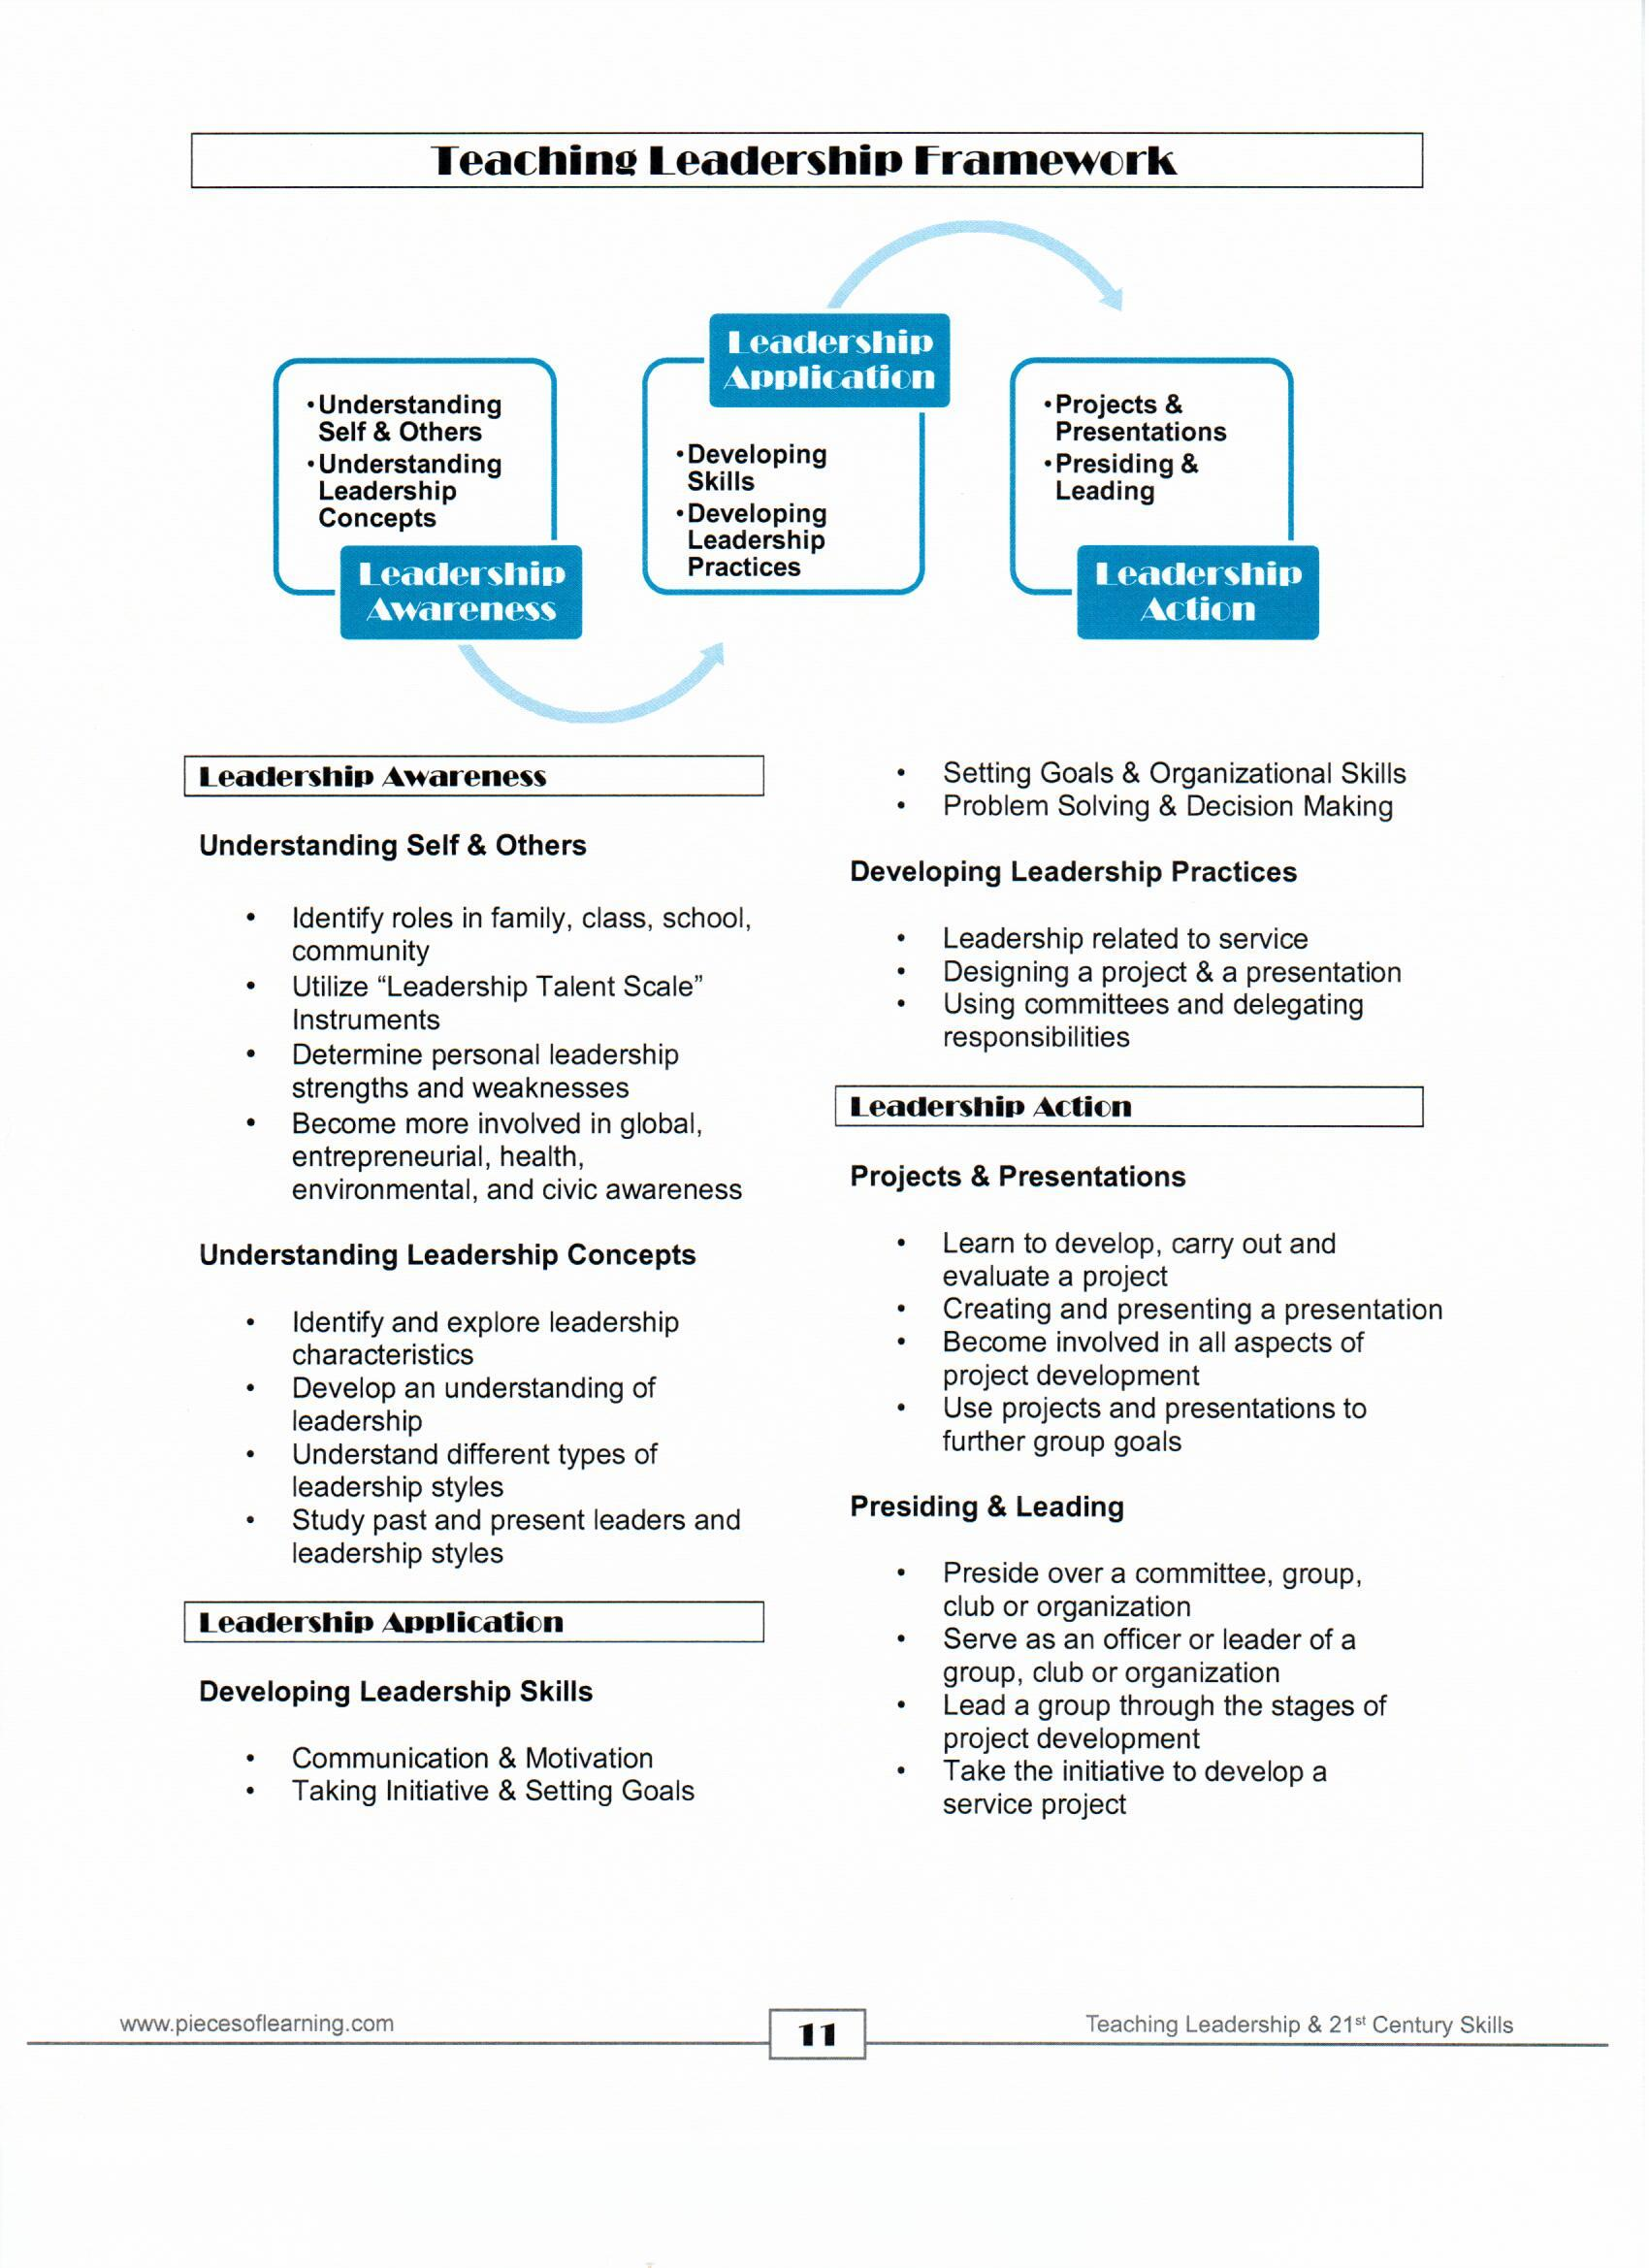 Book Leadership Framework